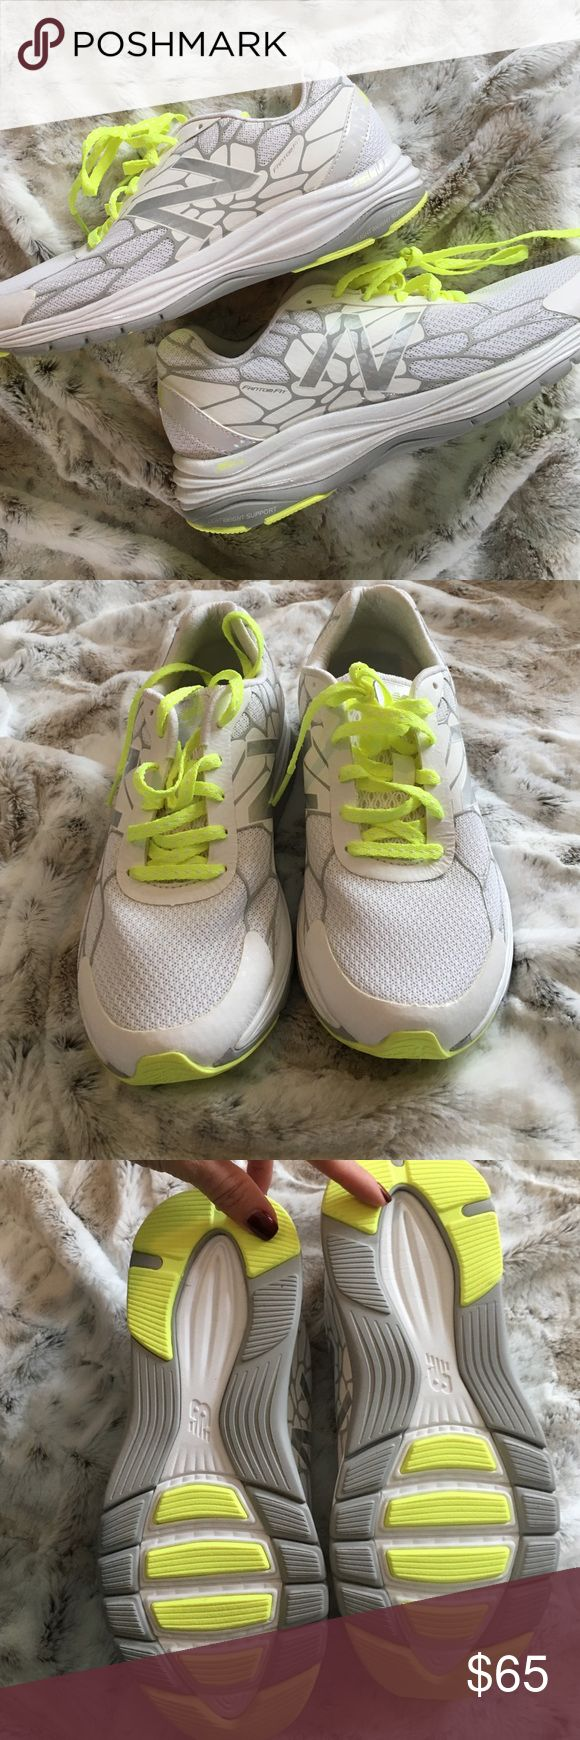 NEW! Women's New Balance WW1745 Walking Shoe BRAND NEW - NEVER WORN! White New Balance WW1745 women's walking shoe. Size 7. Retails for $85 (see photo 4) New Balance Shoes Athletic Shoes